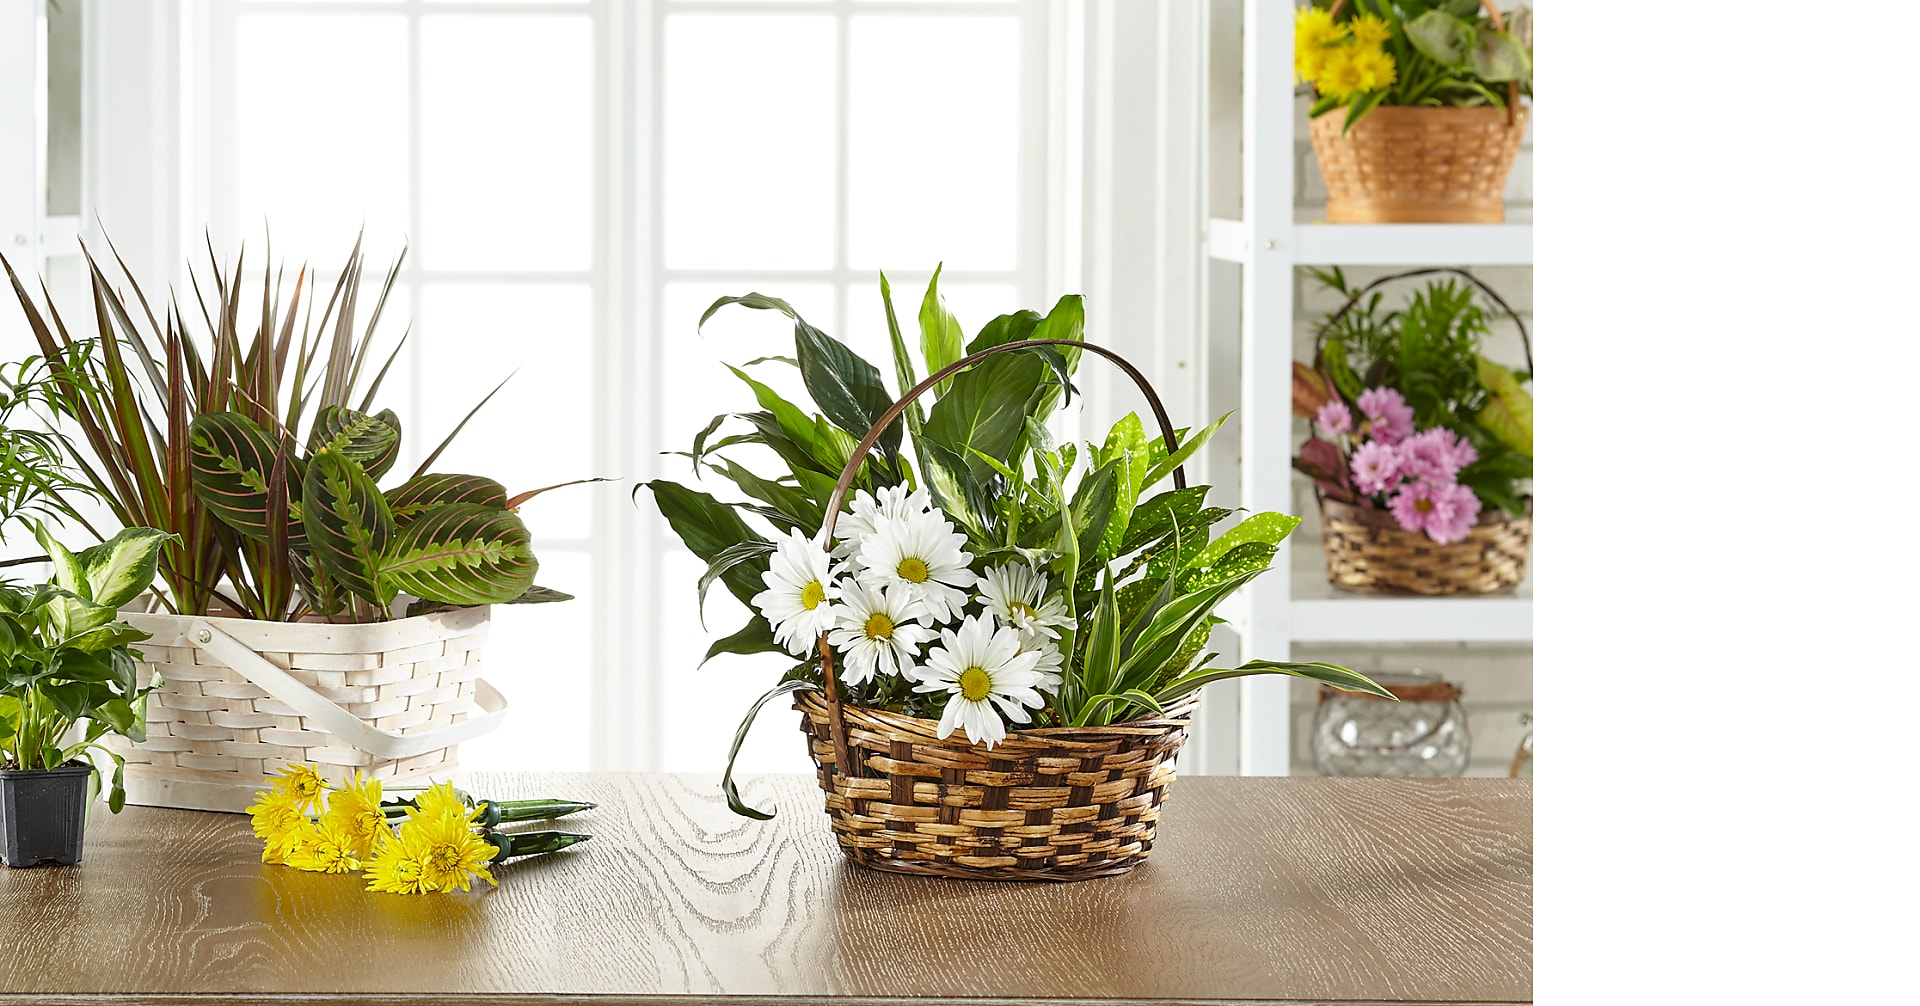 Florist Designed Dishgarden